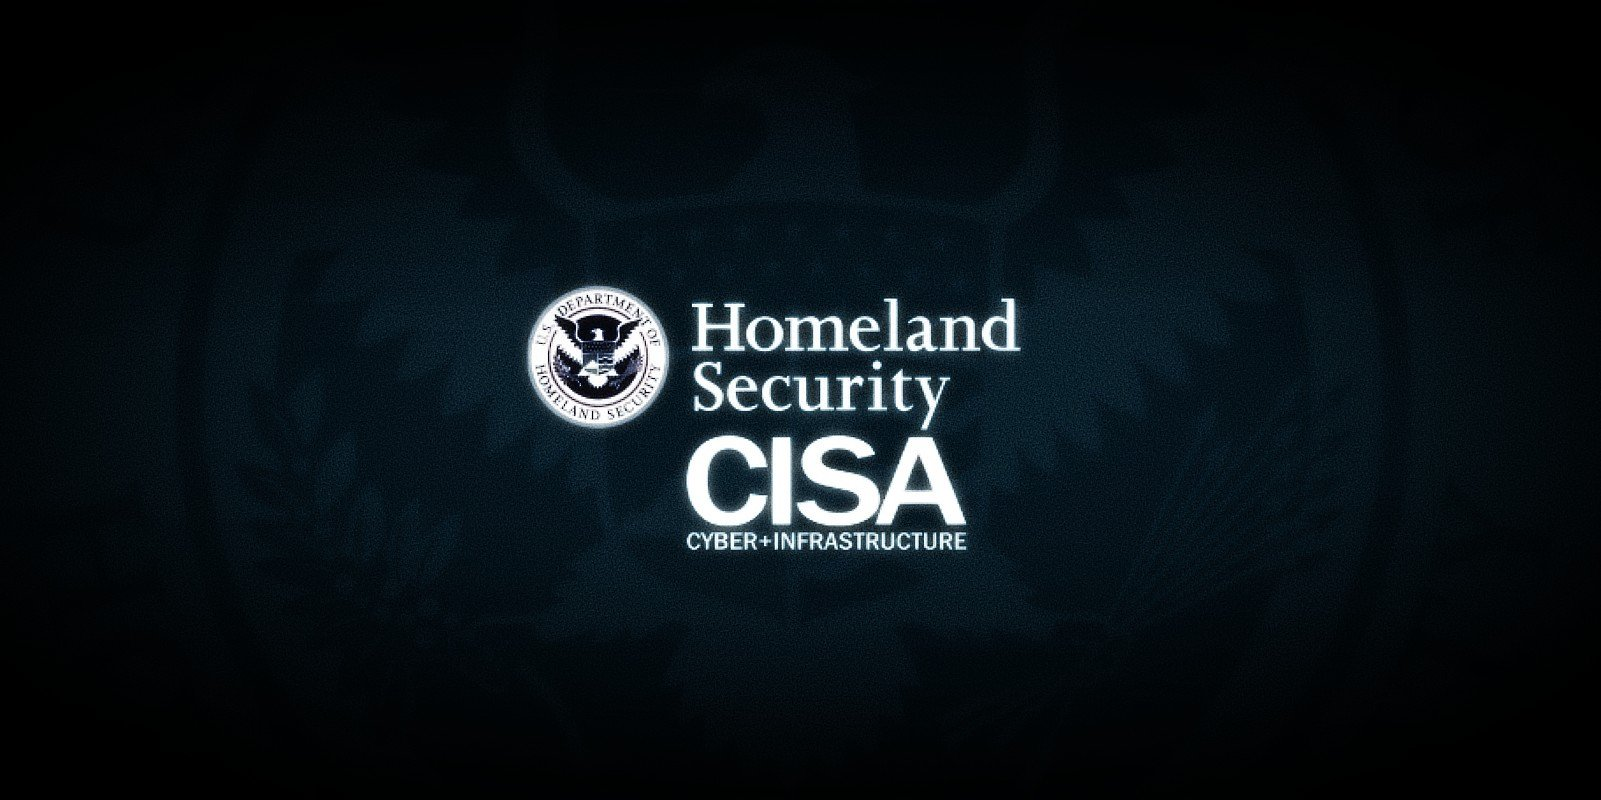 CISA: Hackers breached US govt using more than SolarWinds backdoor